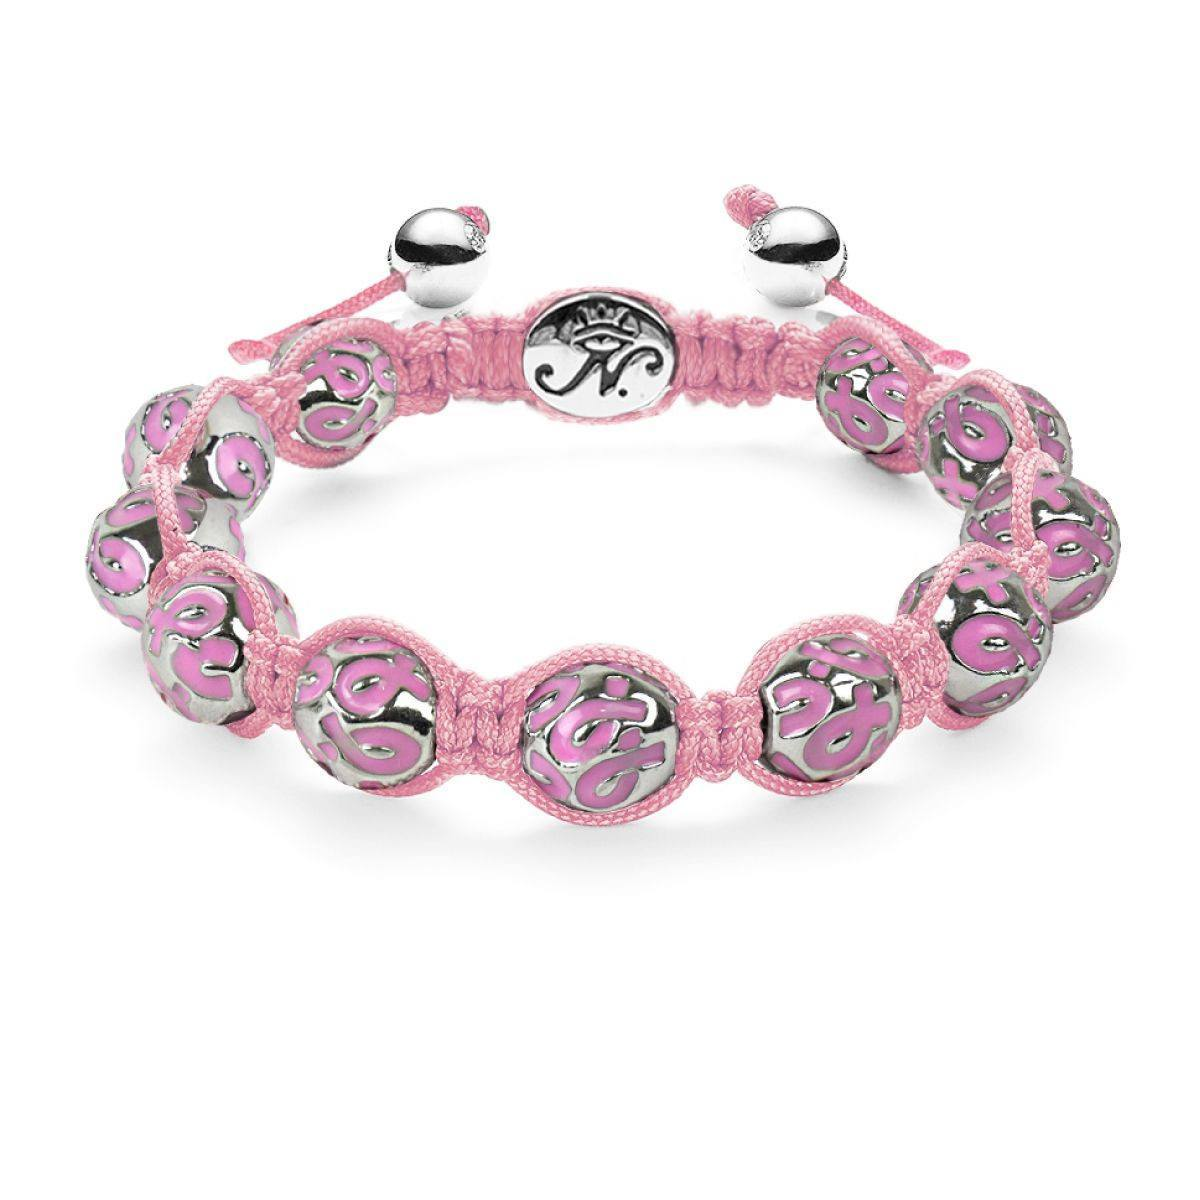 The Pink Ribbon Charmballa - Breast Cancer Awareness Bracelet from Joseph Nogucci